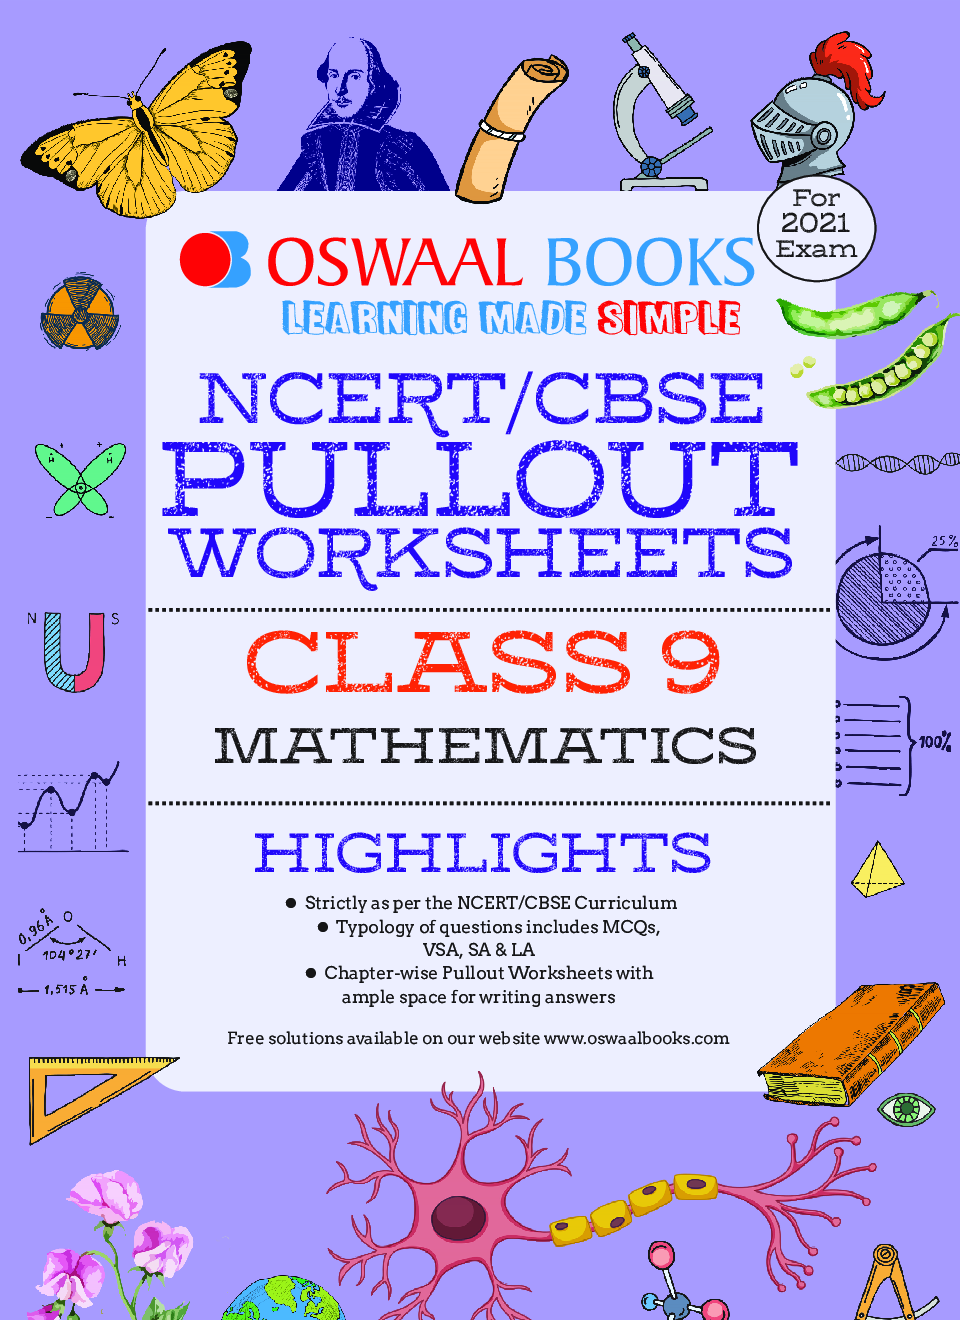 Oswaal NCERT & CBSE Pullout Worksheets For Class - IX Mathematics (March 2021 Exam) - Page 2